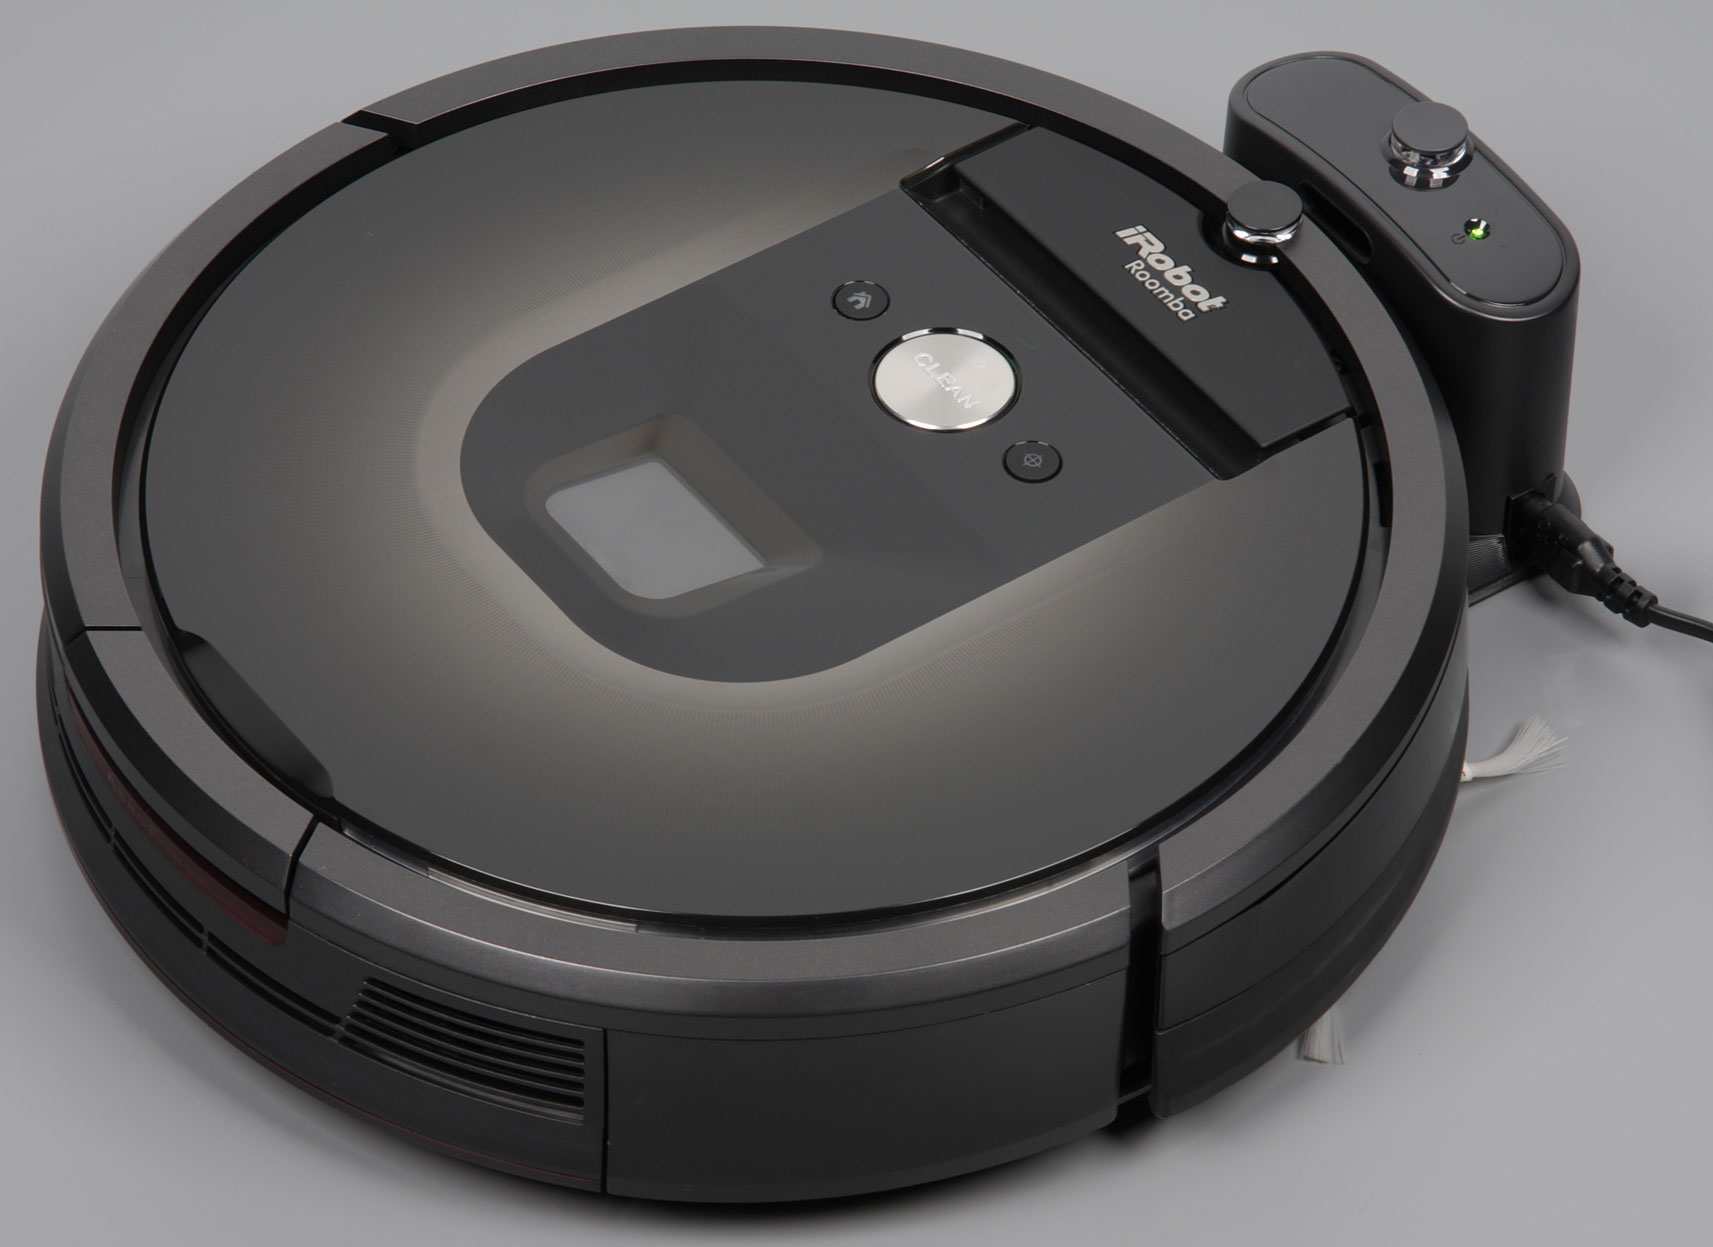 iRobot Roomba 980 docked